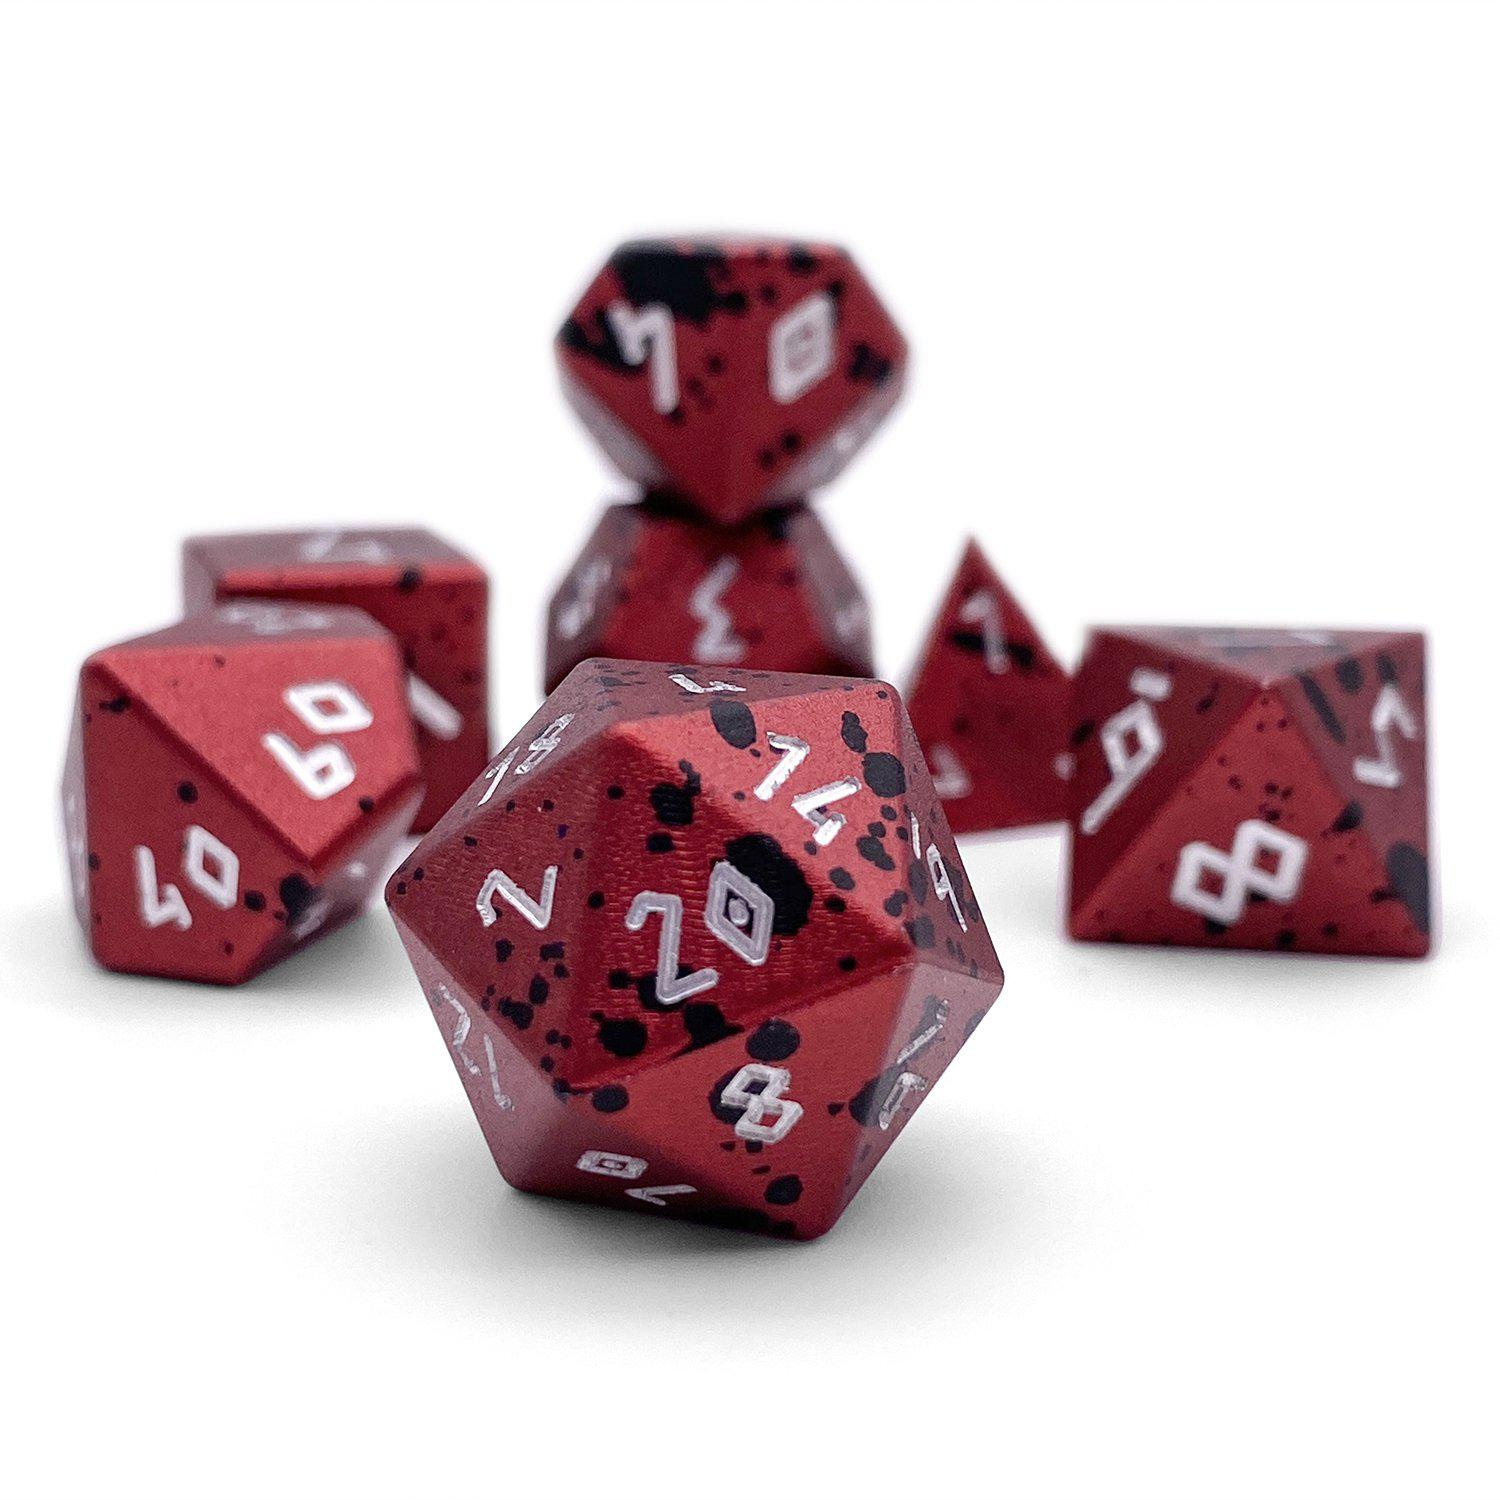 Berserker S Frenzy Wondrous Dice Set Of 7 Rpg Dice By Norse Foundry Since 2004, norse projects has drawn upon its scandinavian roots to inform a design language that supports an infrastructure for a highly adaptable wardrobe. berserker s frenzy wondrous dice set of 7 rpg dice by norse foundry precision polyhedral dice set